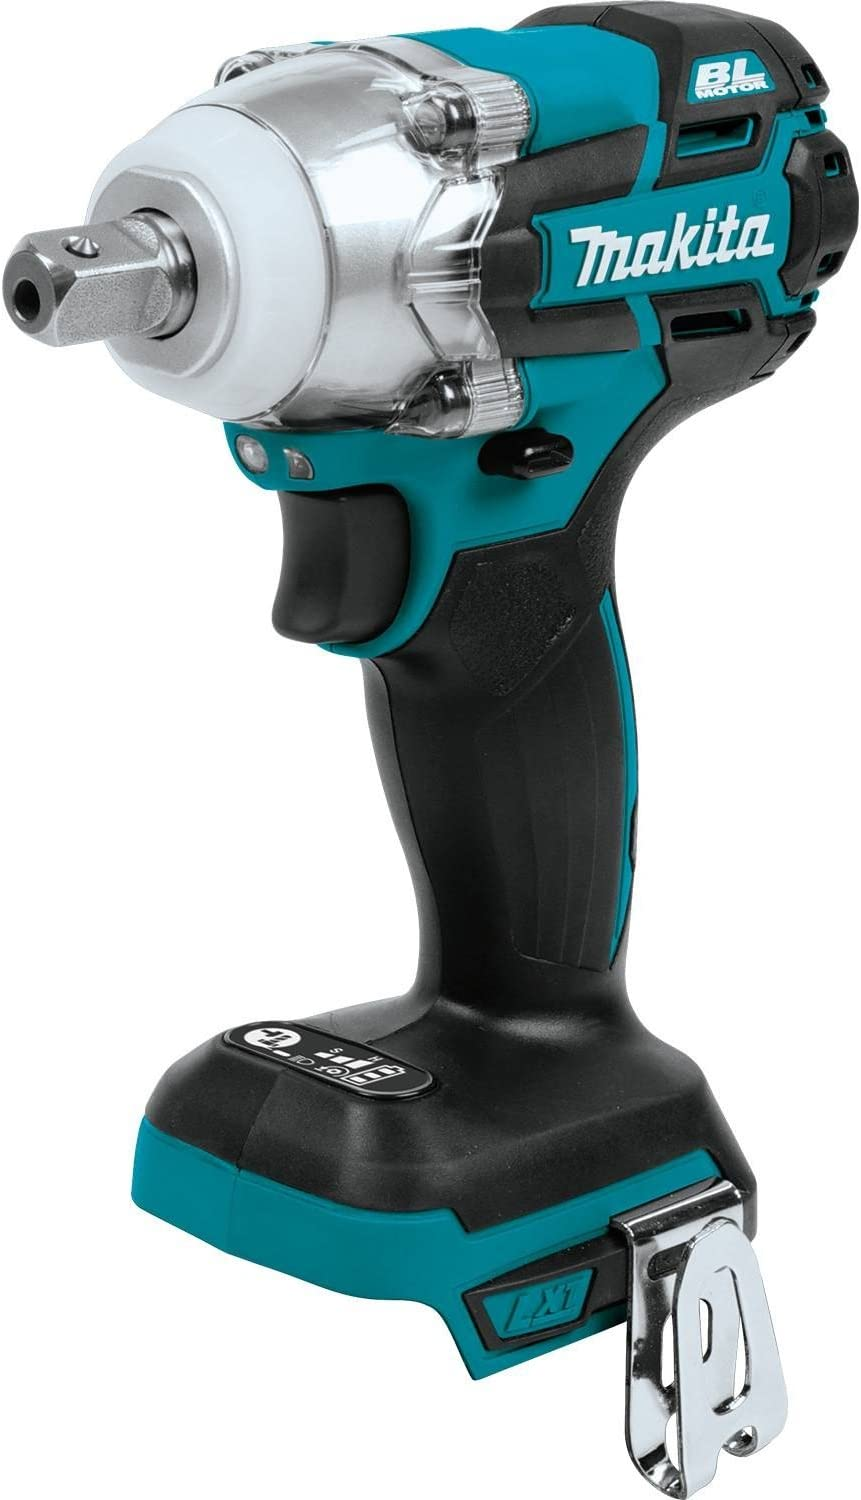 Makita XWT11Z 18V LXT Lithium-Ion Brushless Cordless 3-Speed 1 2 Sq. Drive Impact Wrench, Tool Only